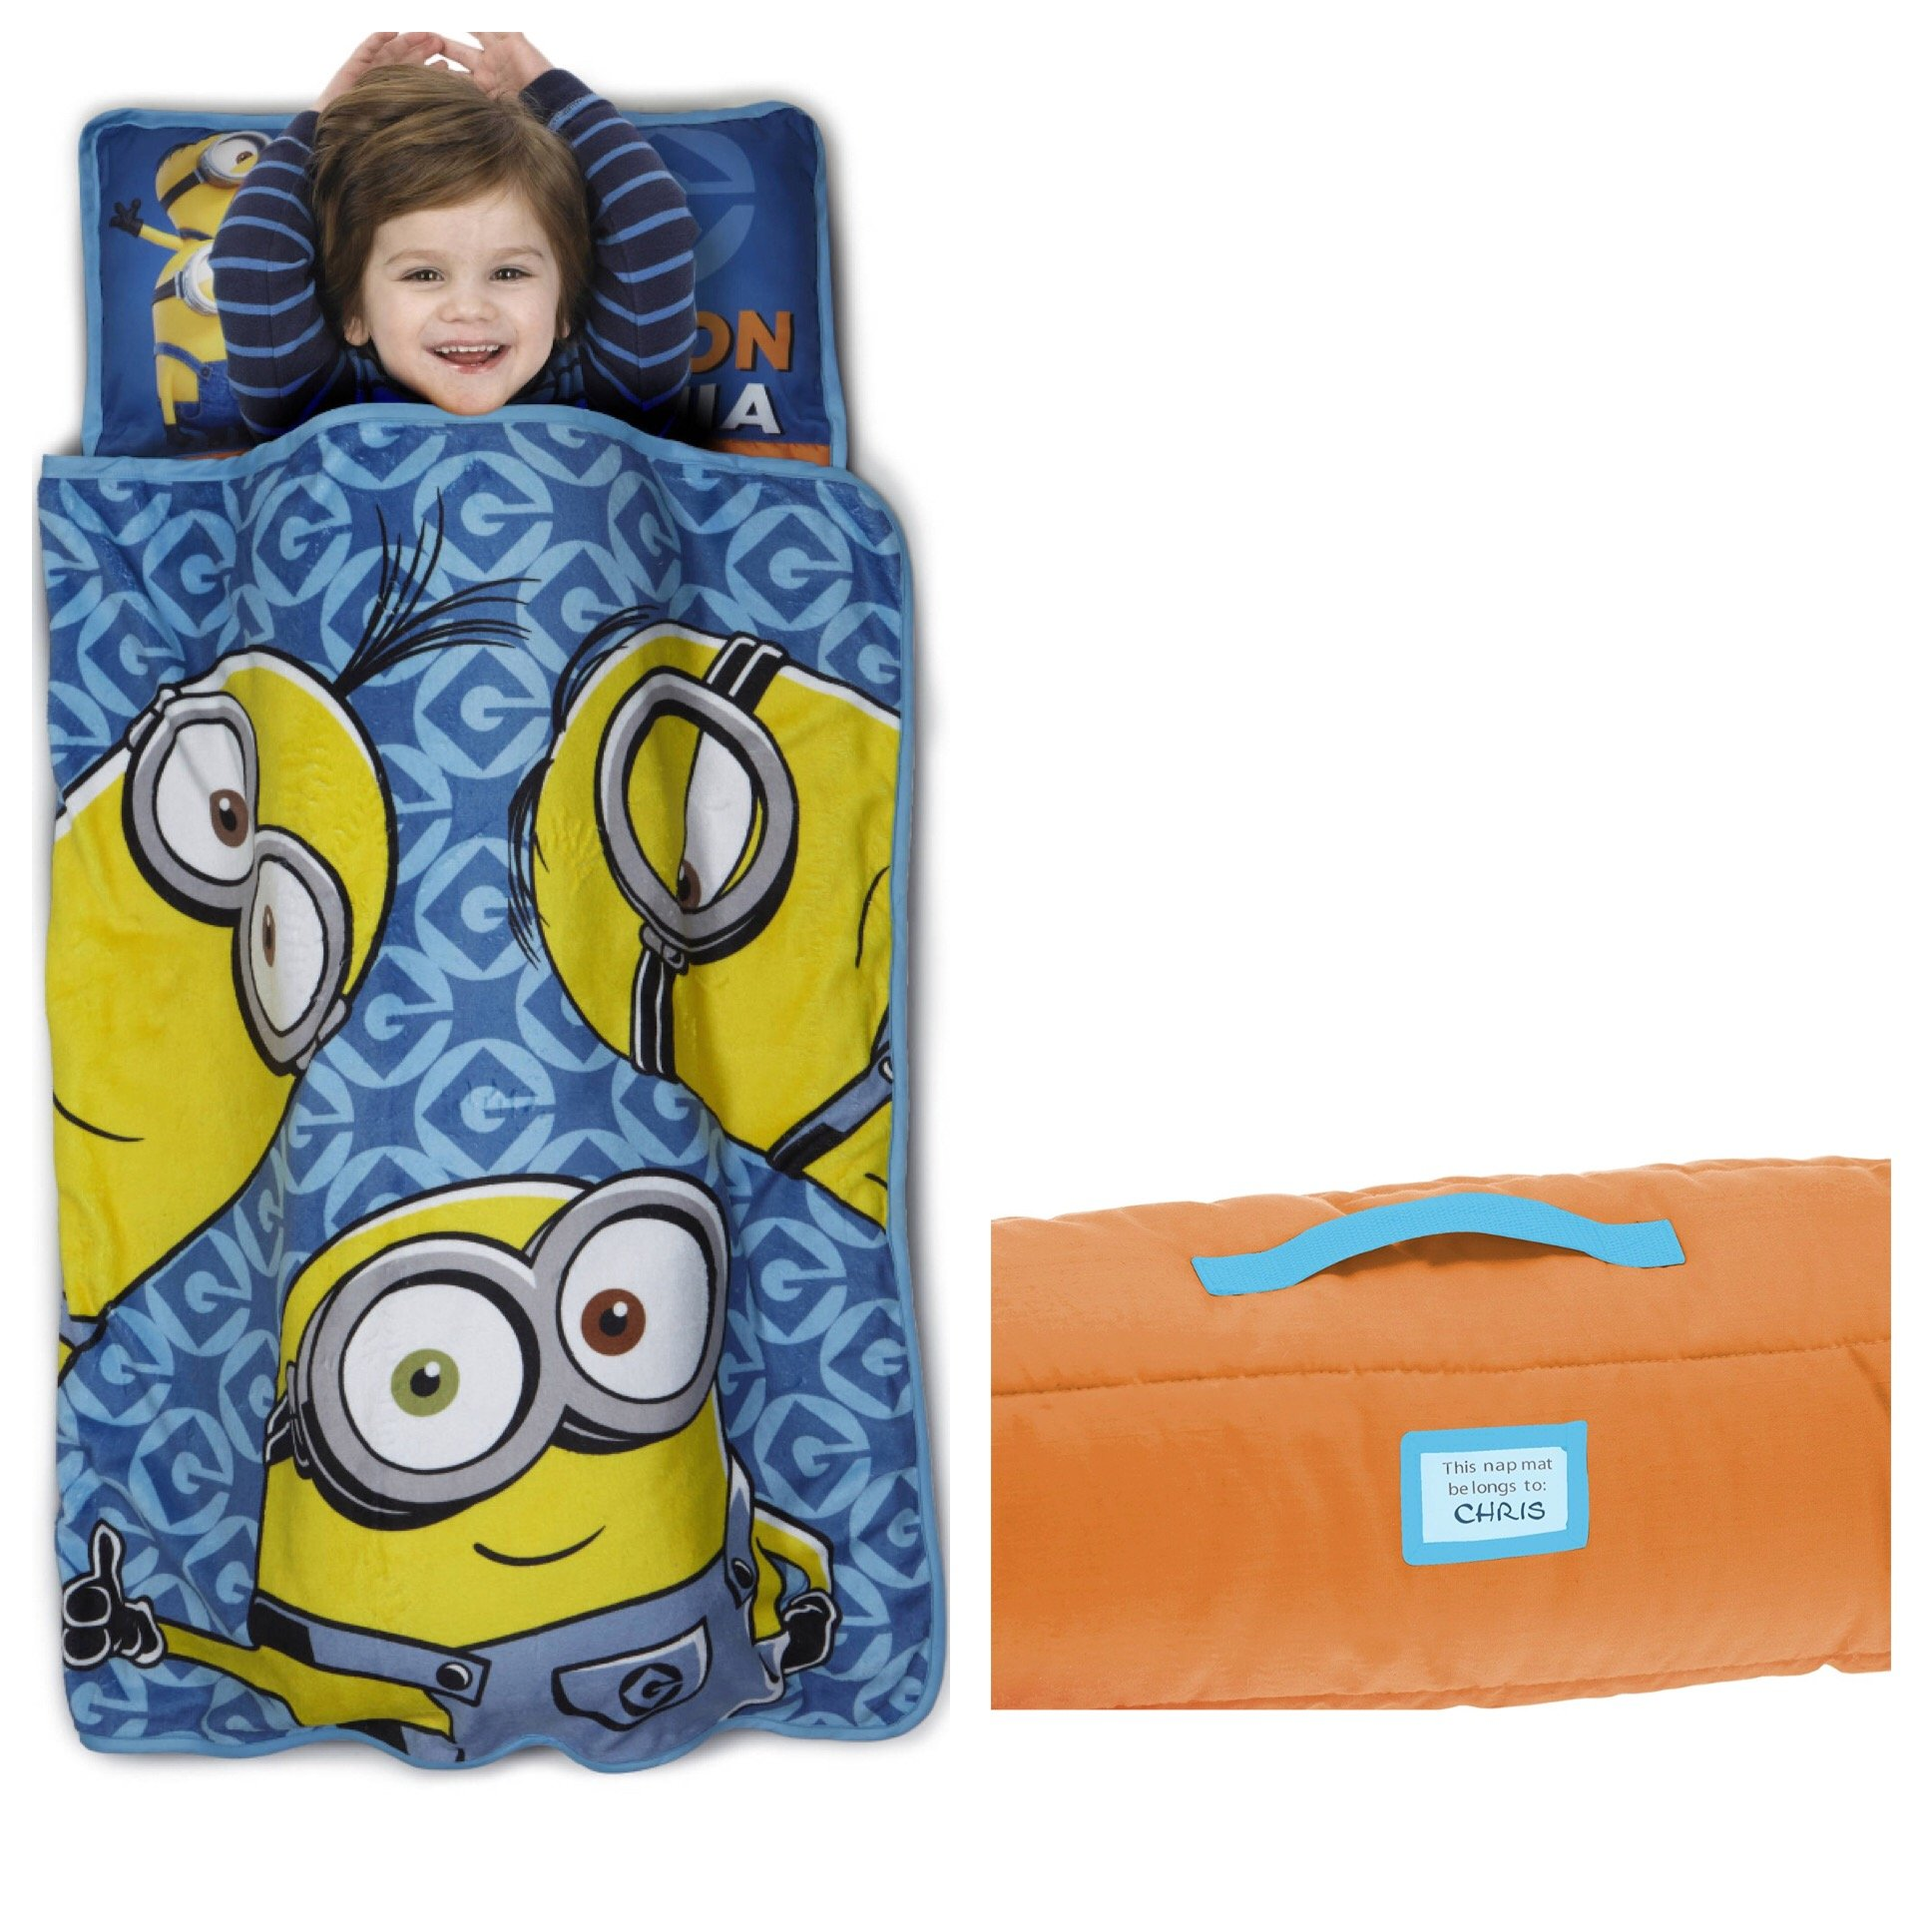 Despicable Me Minions One in a Minion Toddler Nap Mat, Blue